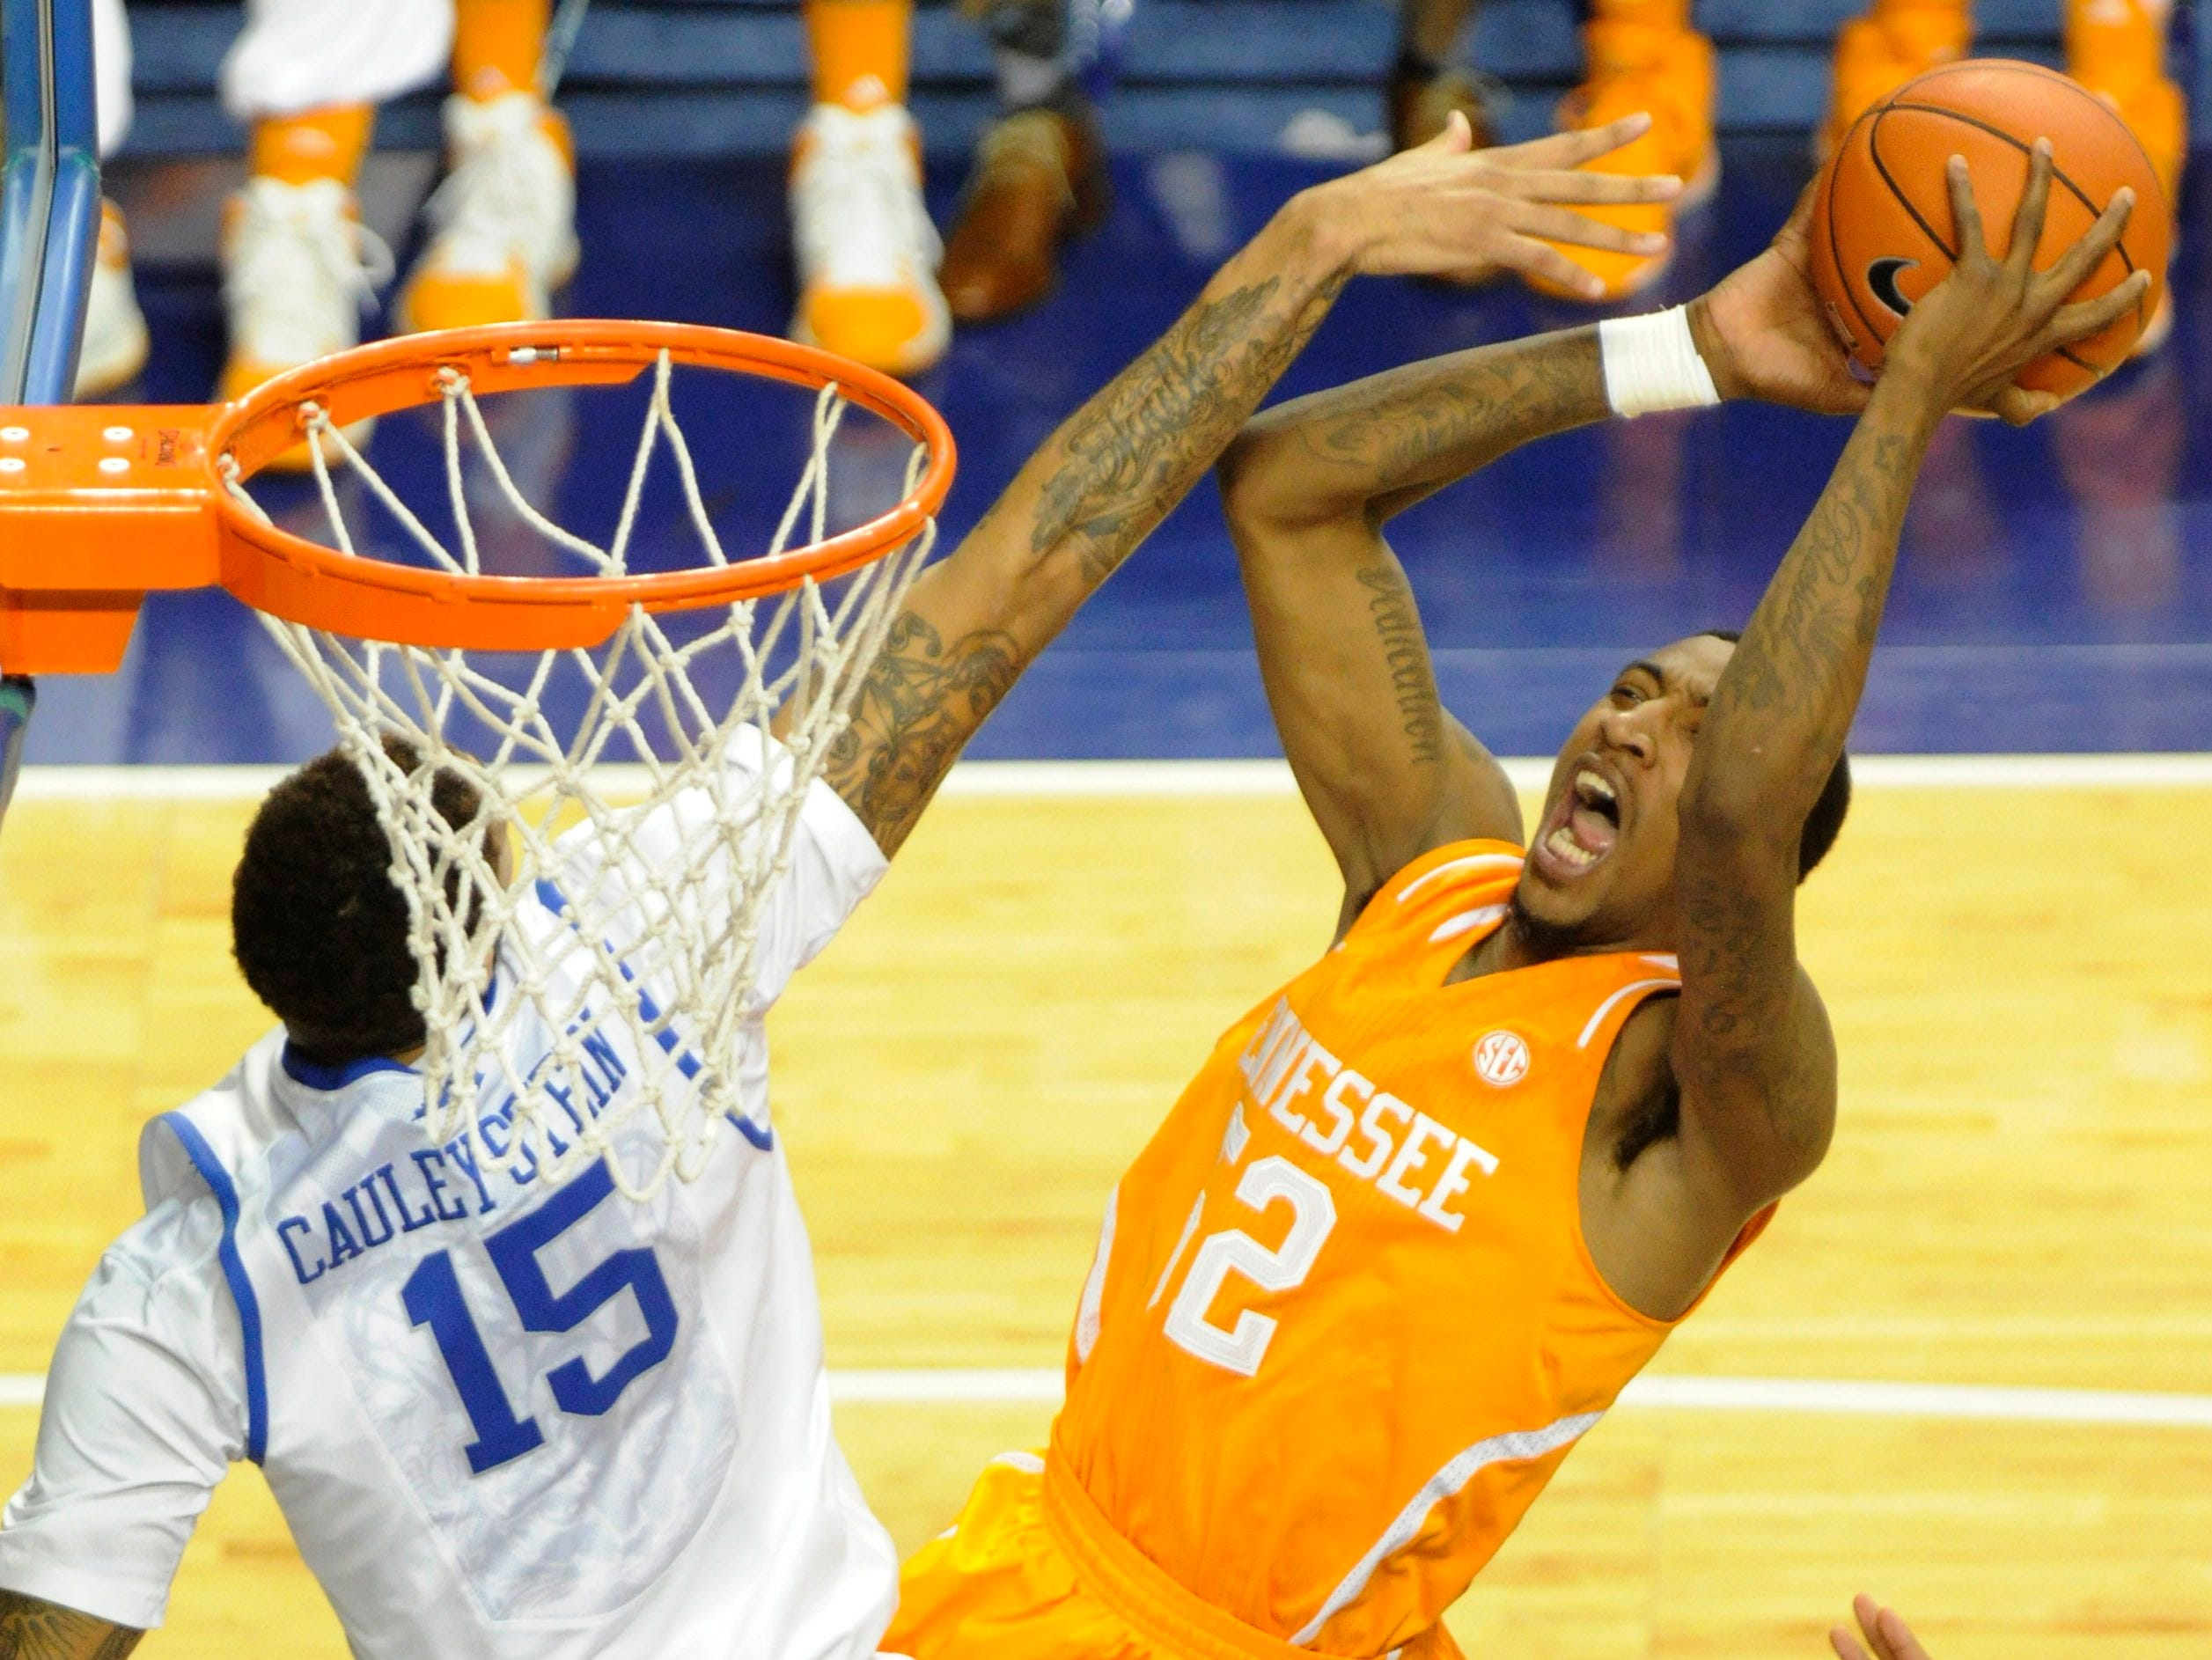 Kentucky forward Willie Cauley-Stein (15) attempts to block a layup by Tennessee guard Jordan McRae (52) during the second half at University of Kentucky's Rupp Arena in Lexington on Saturday, Jan. 18, 2014. Tennessee lost 74-66.